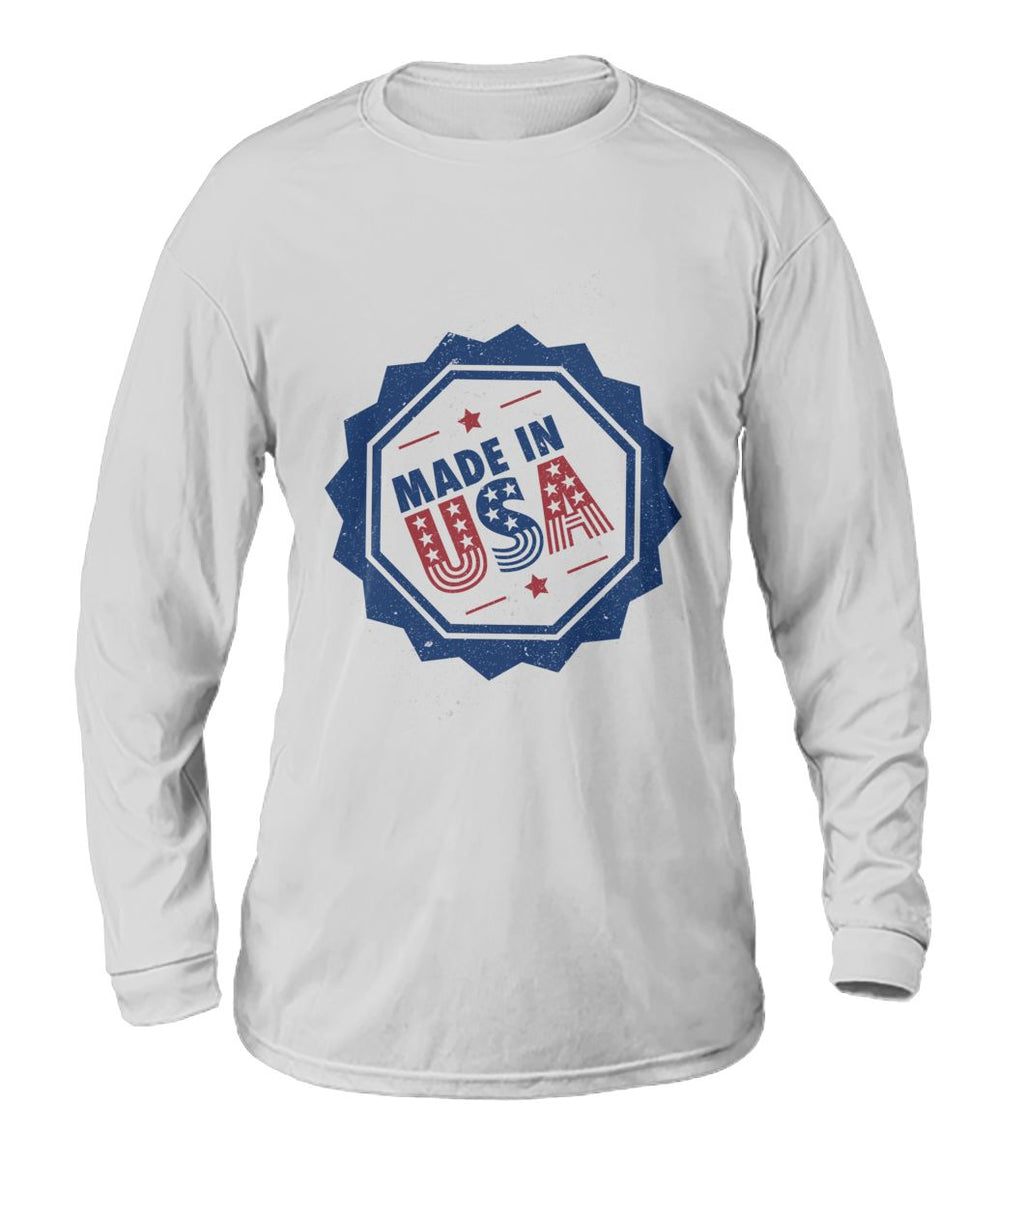 The Patriot - Made in the USA Long-Sleeve Tee